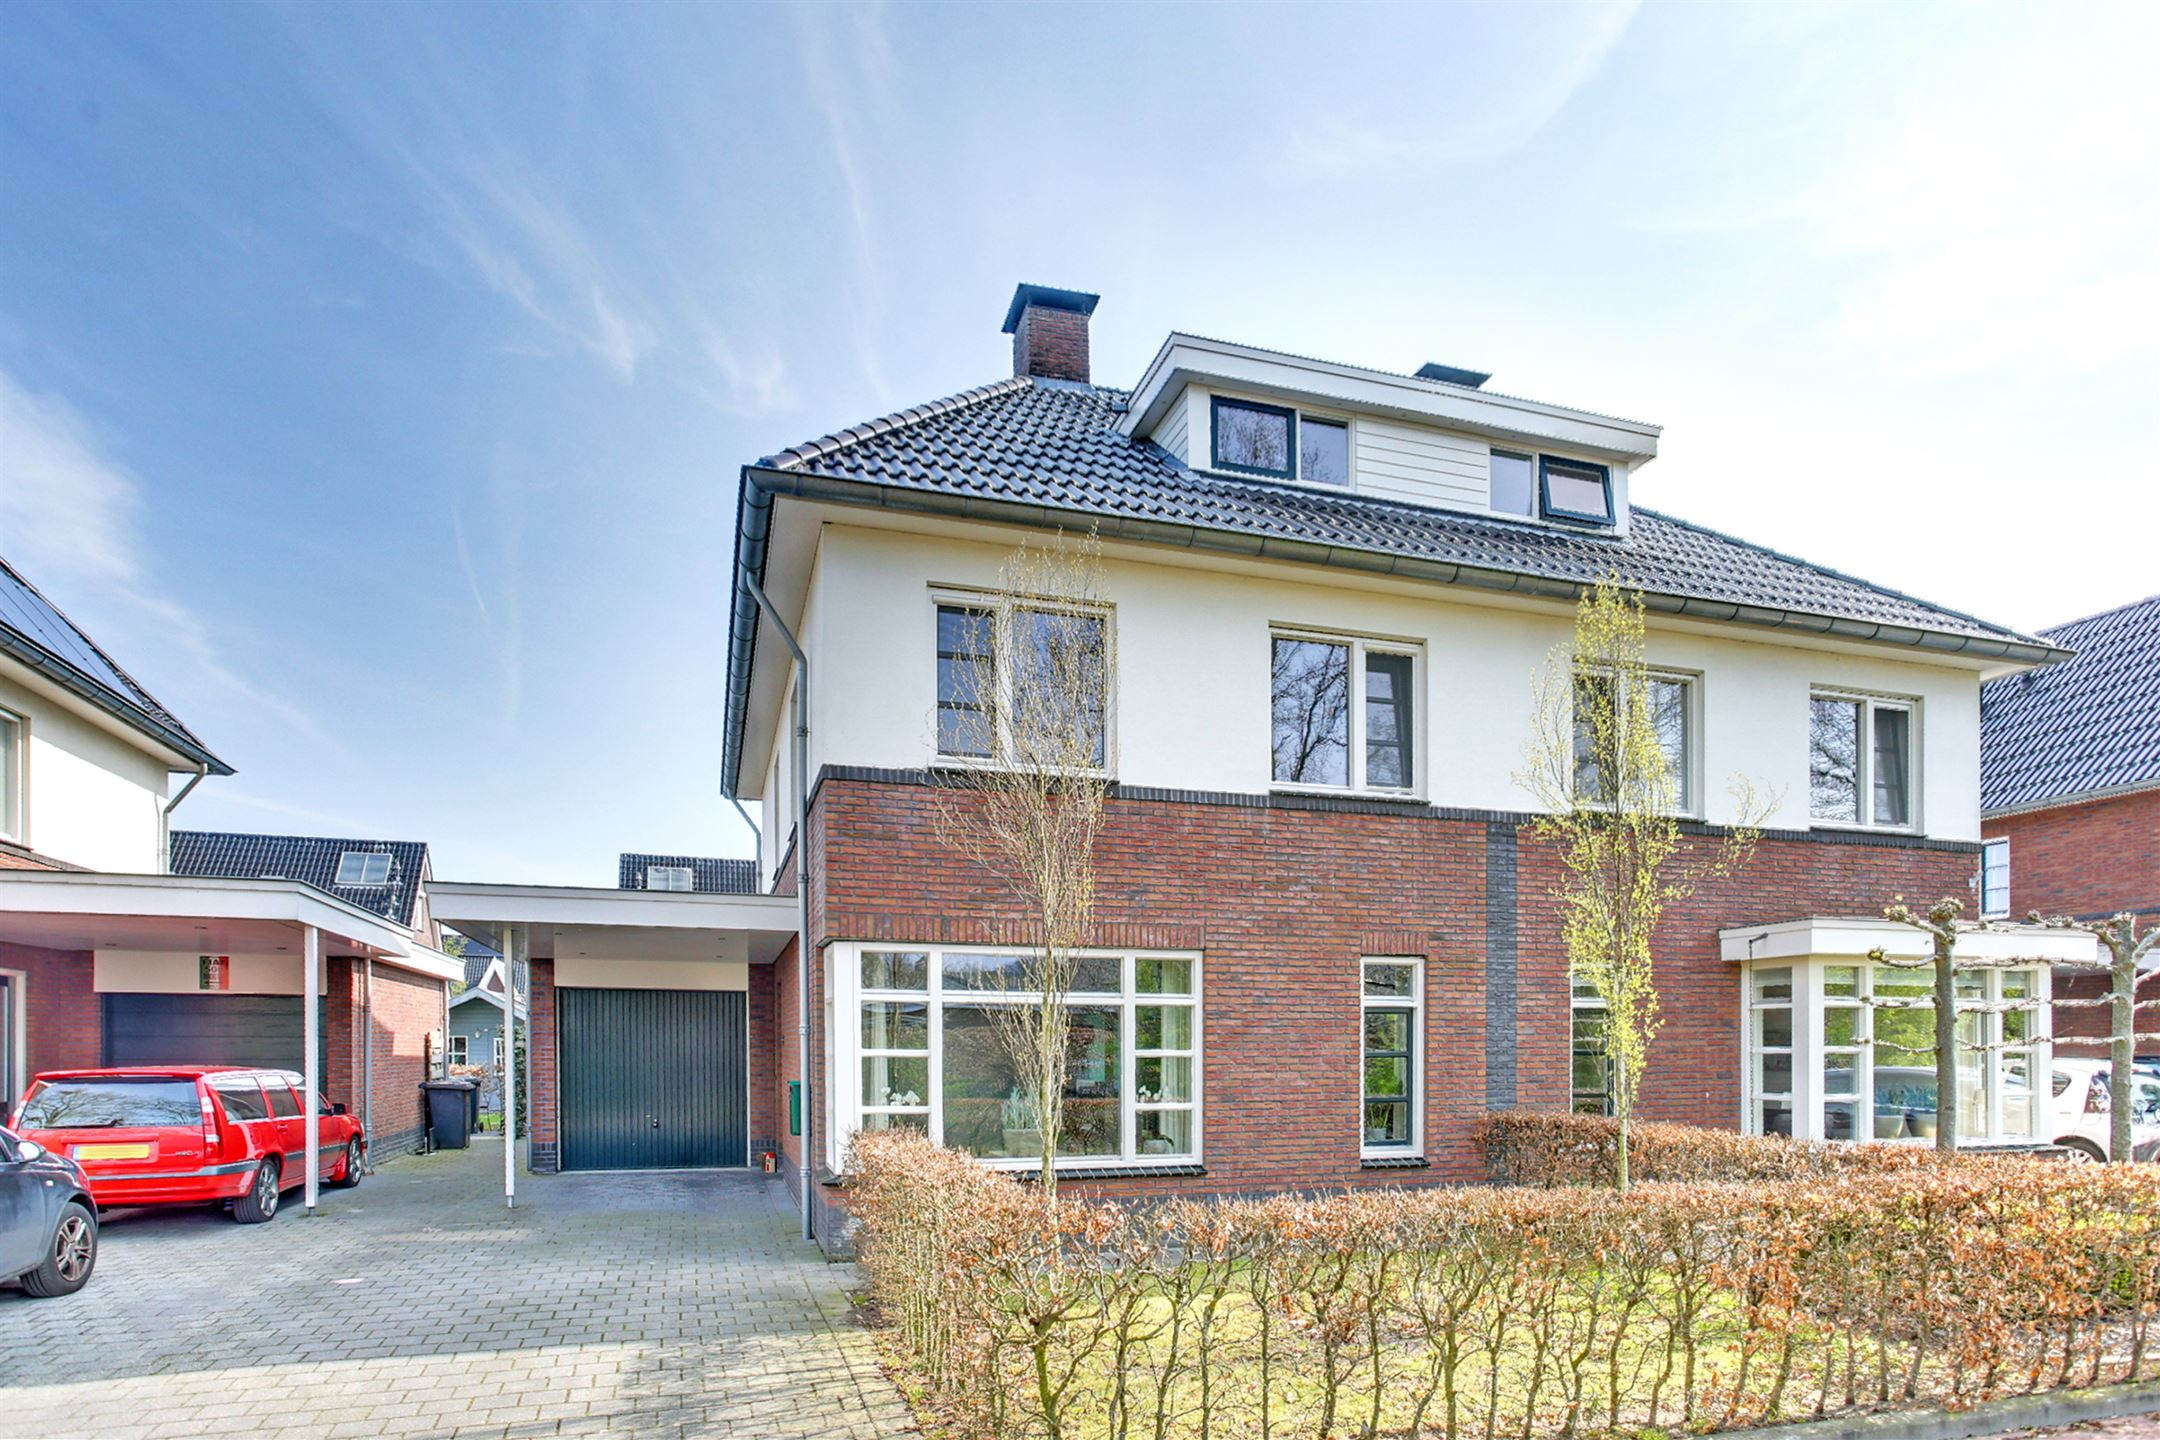 Zwembad Westerbork Entree House For Sale Weidemaat 14 9431 Mv Westerbork Funda